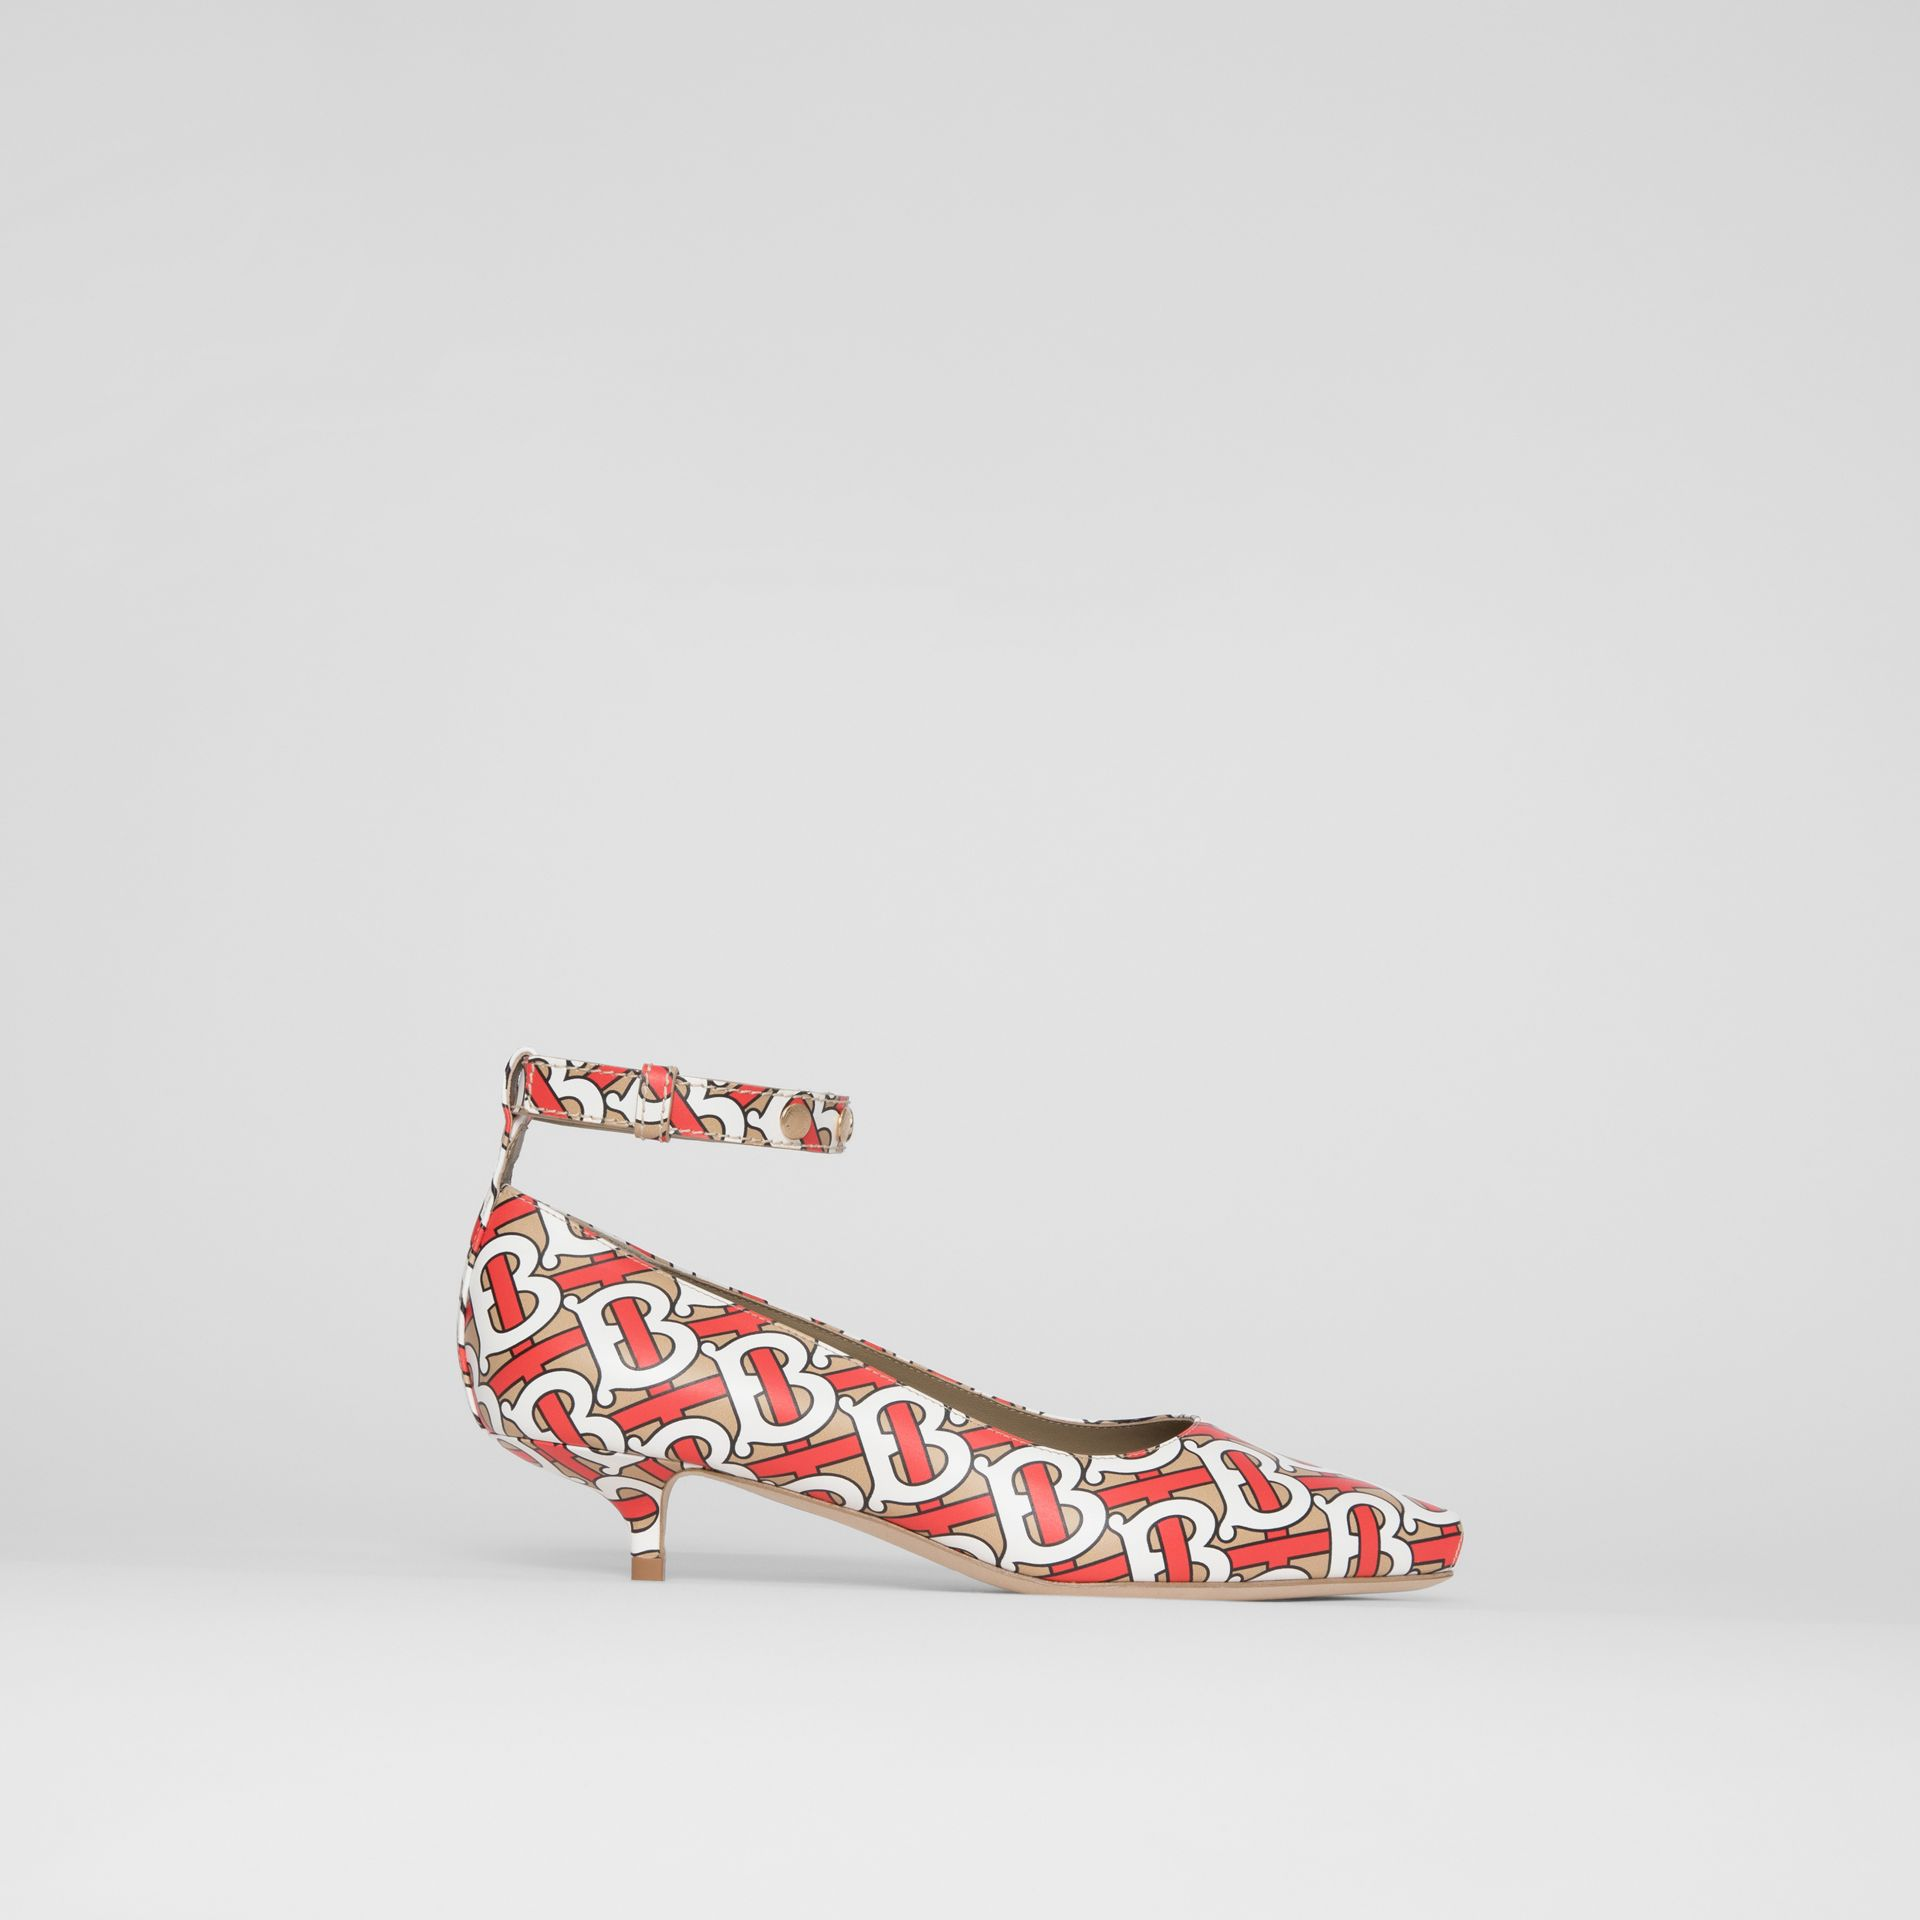 Monogram Print Leather Peep-toe Kitten-heel Pumps in Tawny - Women | Burberry - gallery image 5